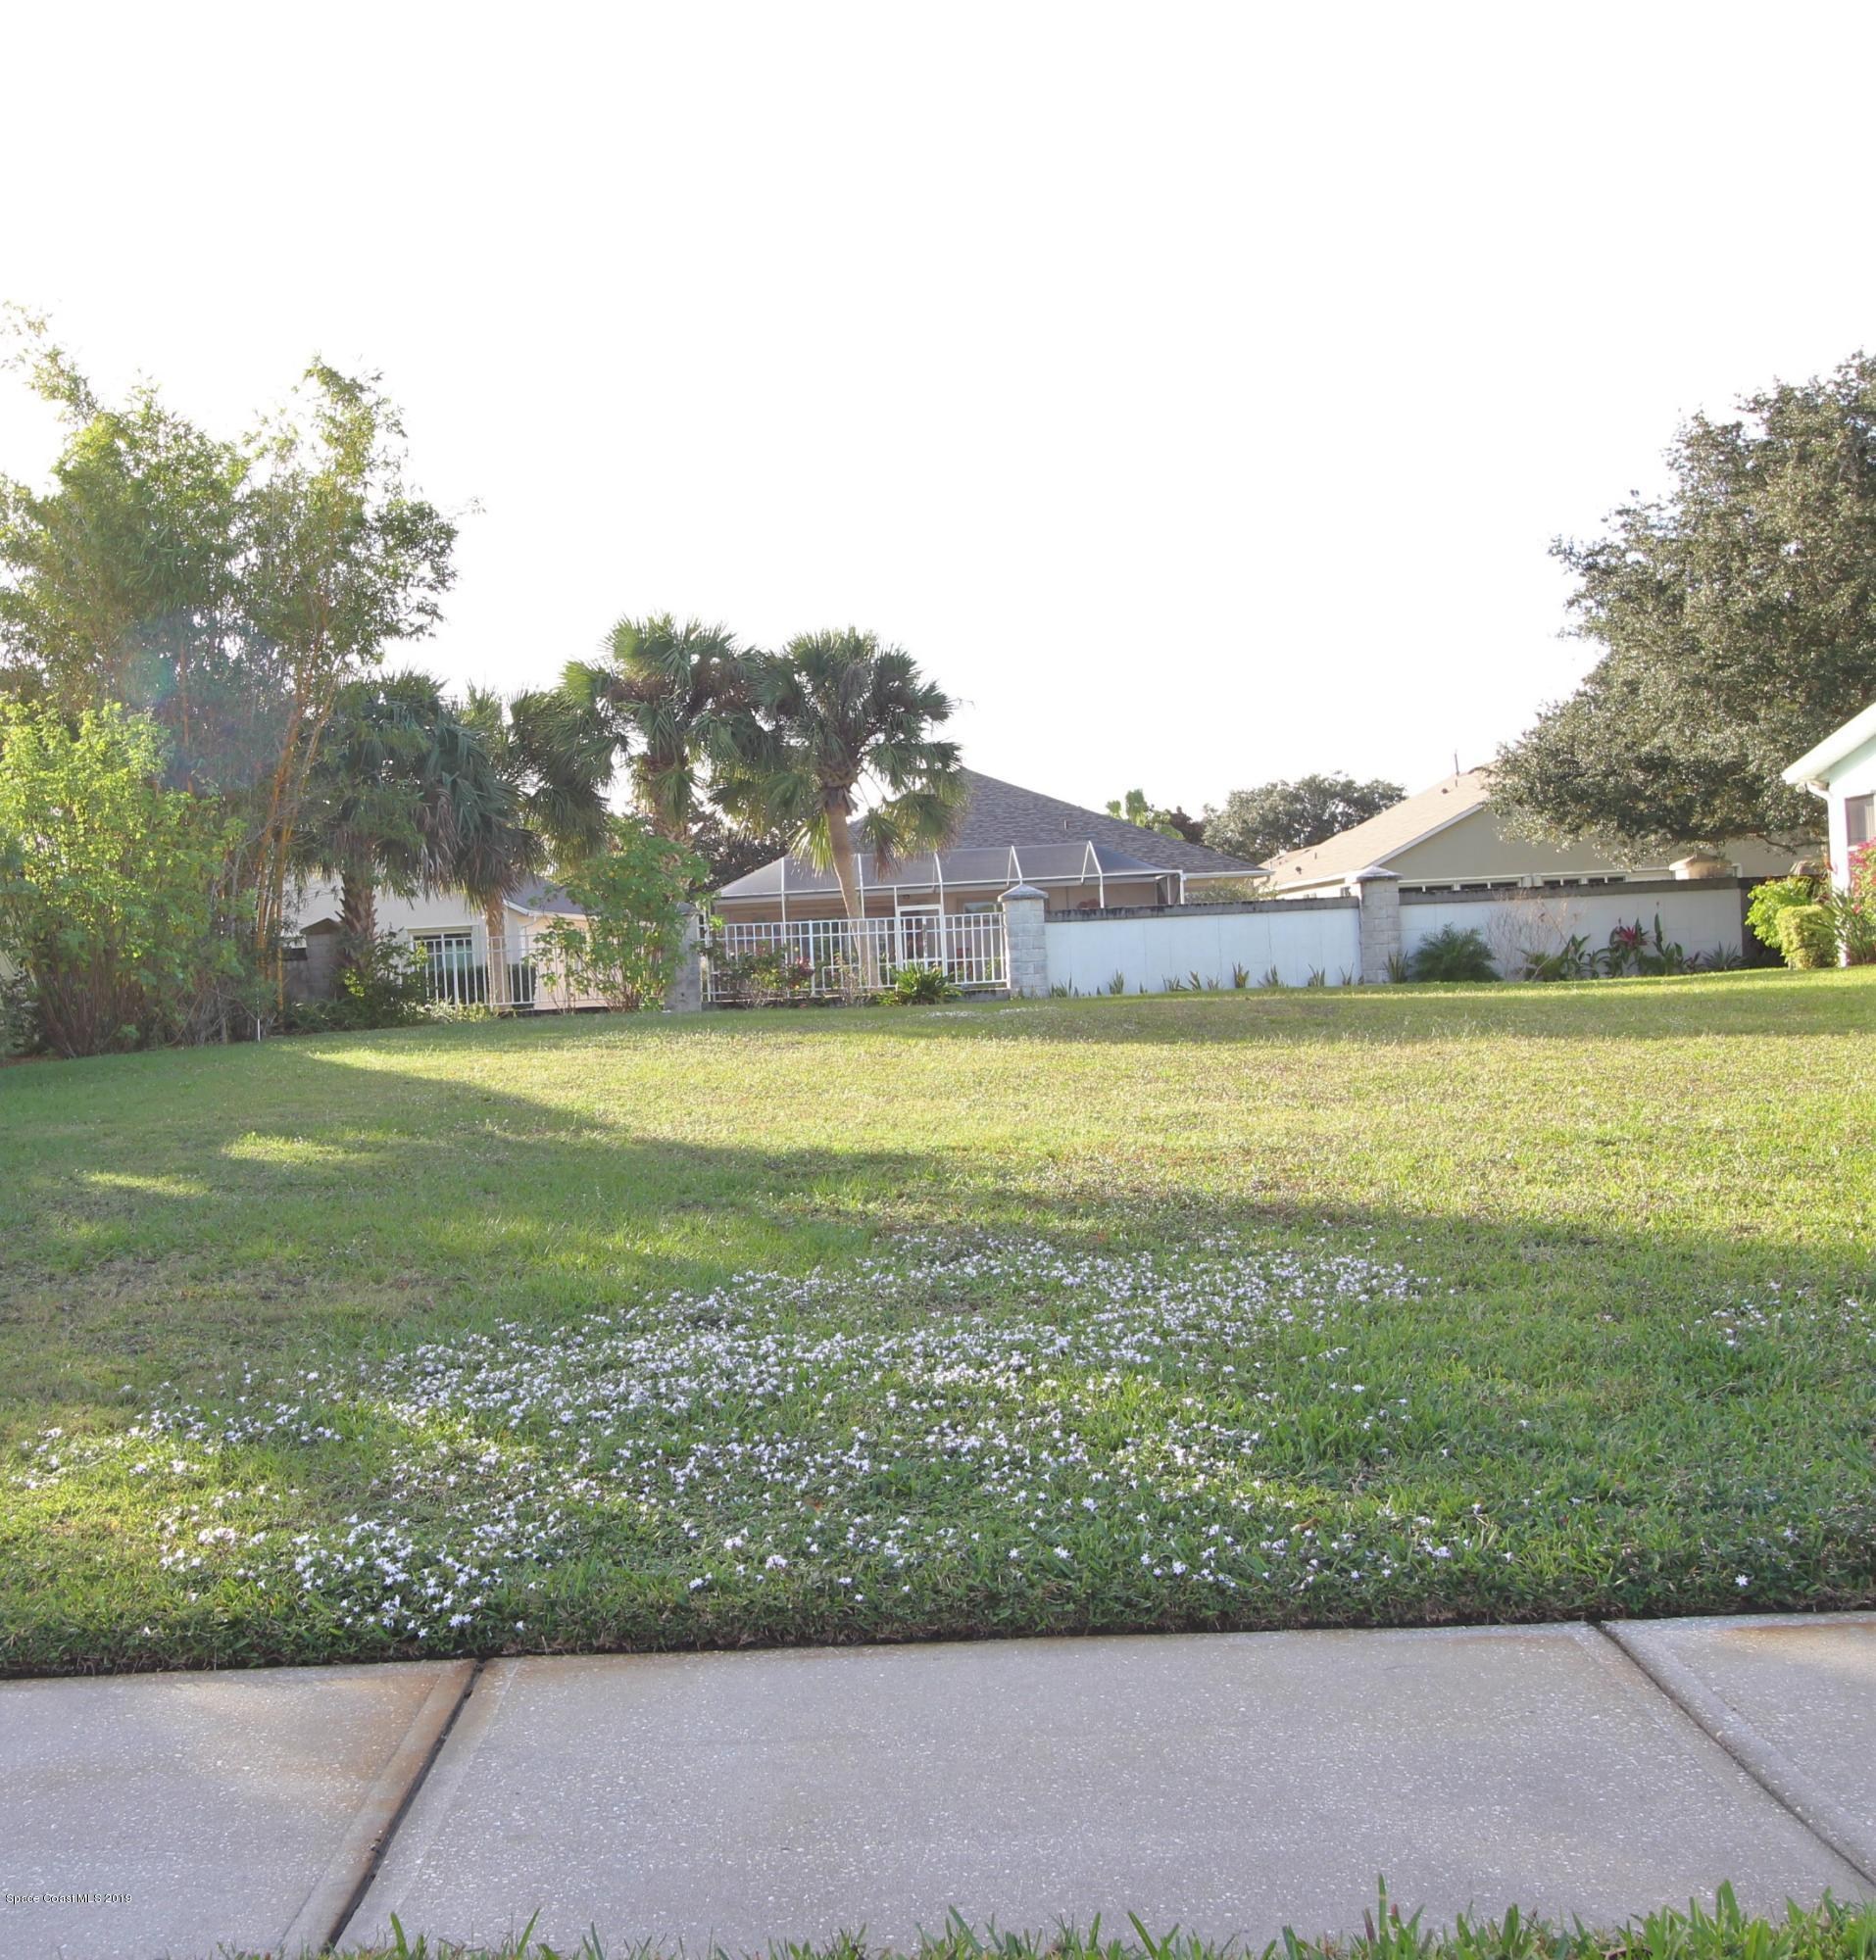 1790 Independence Avenue, Melbourne, FL 32940 - Melbourne, FL real estate listing